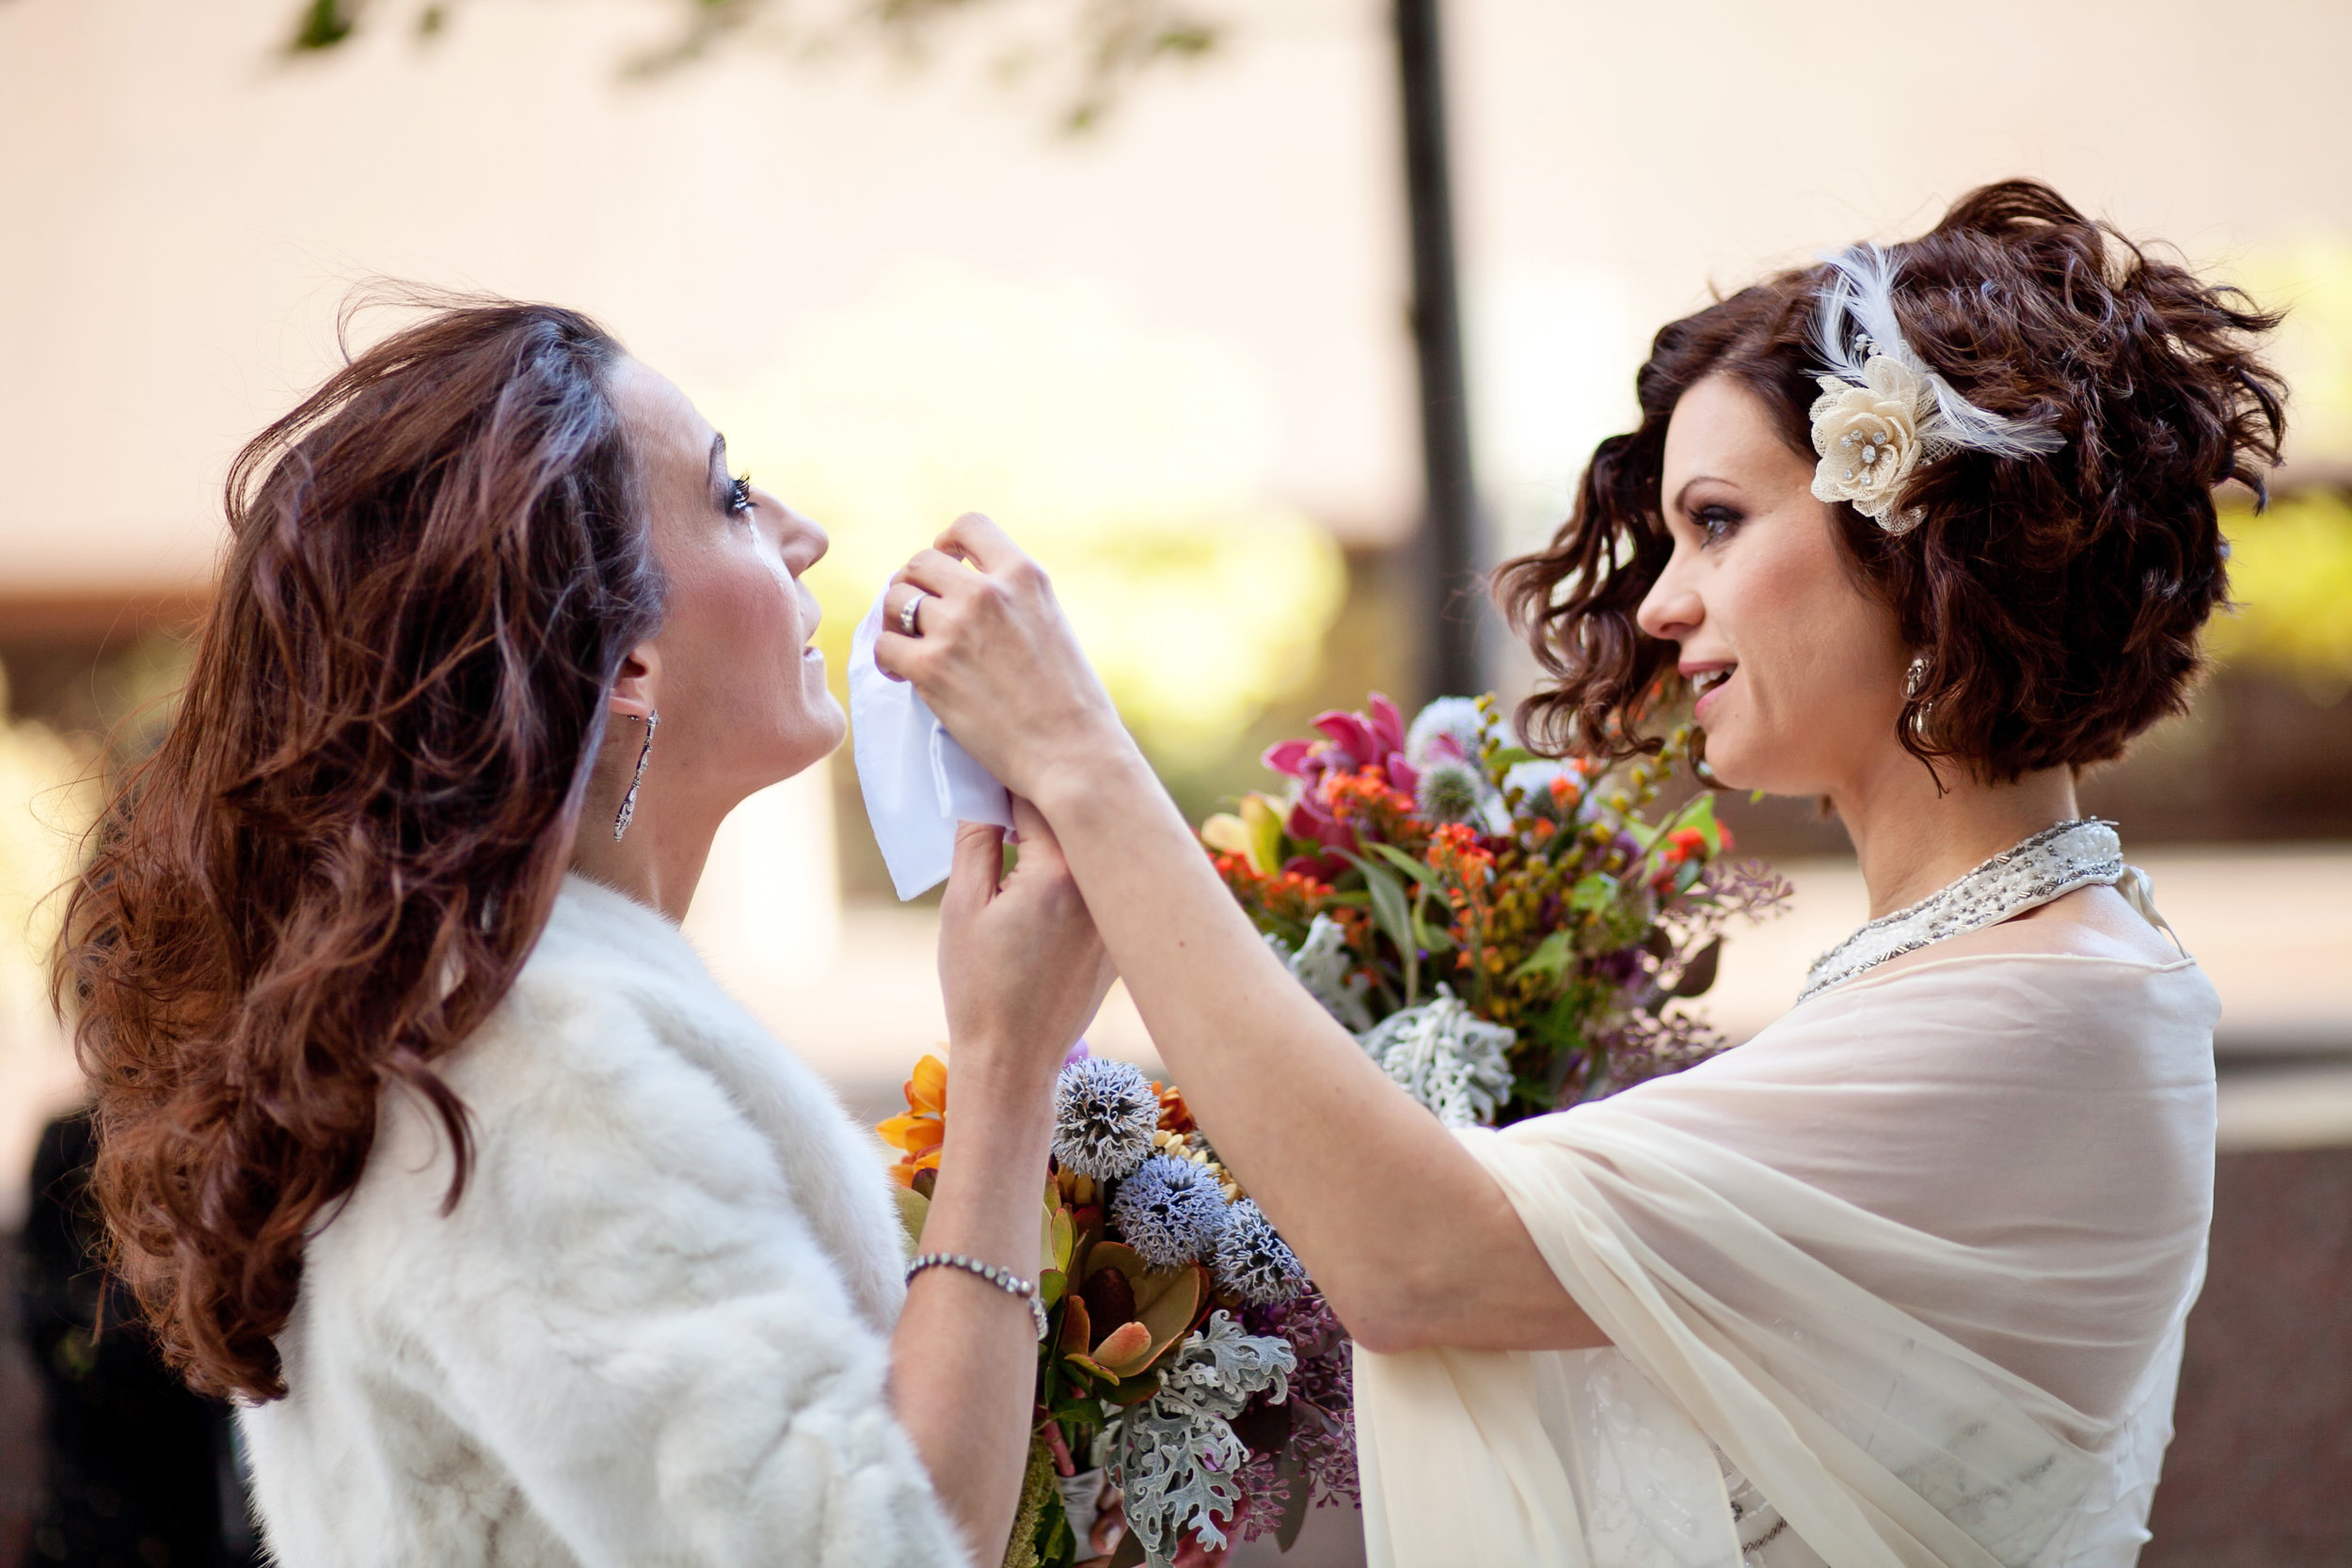 11 first look two brides two brides first look colorful bouquets both brides wear wedding dresses candid first look moment Life Design Events.jpg